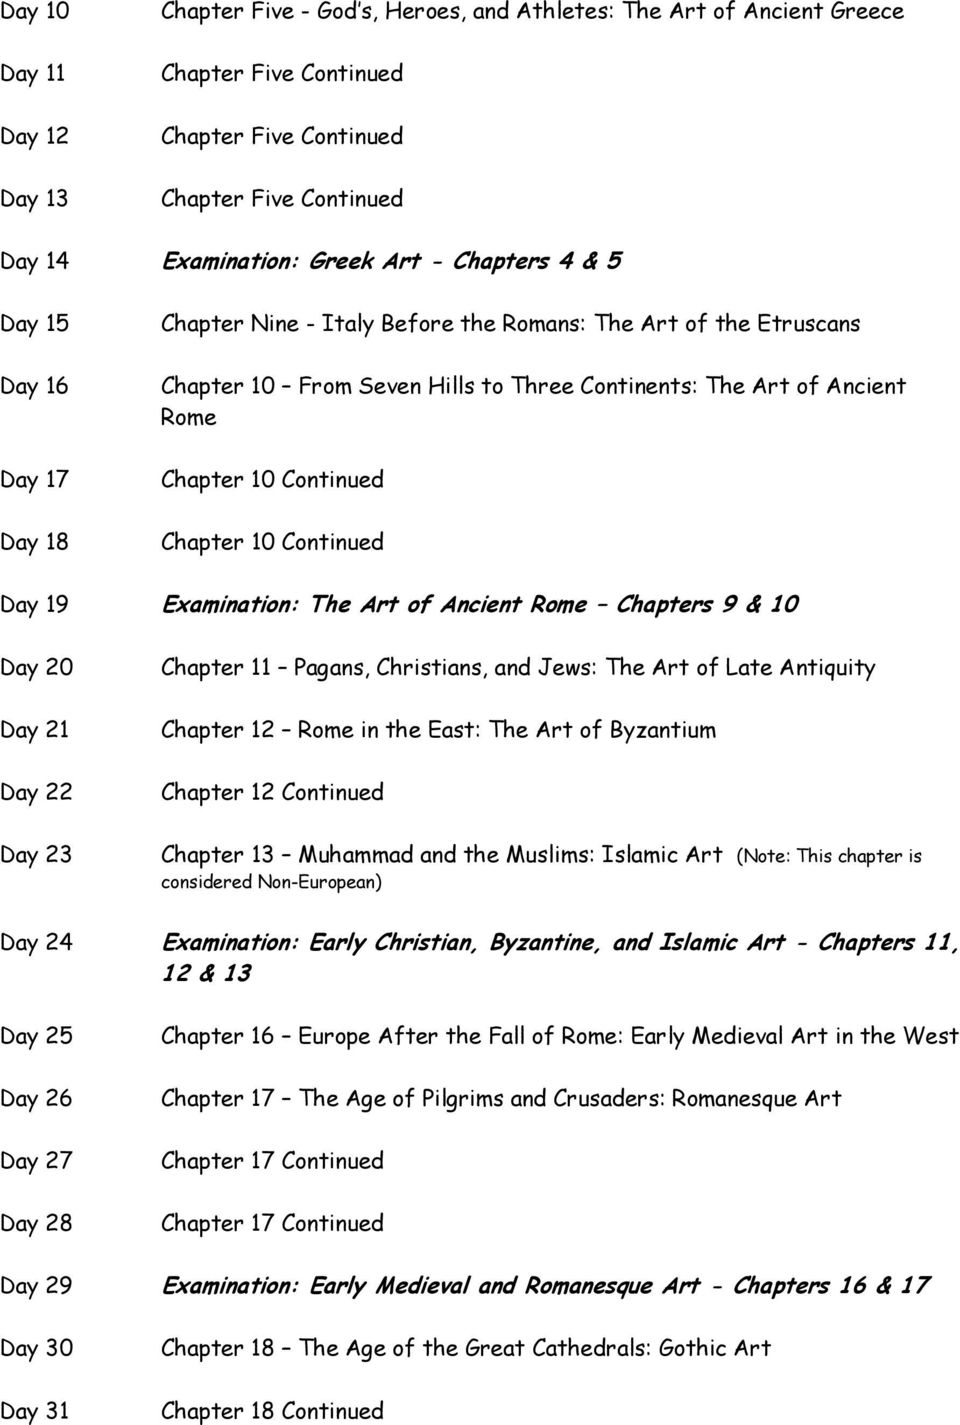 Rome Chapters 9 & 10 Day 20 Day 21 Day 22 Day 23 Chapter 11 Pagans, Christians, and Jews: The Art of Late Antiquity Chapter 12 Rome in the East: The Art of Byzantium Chapter 12 Continued Chapter 13